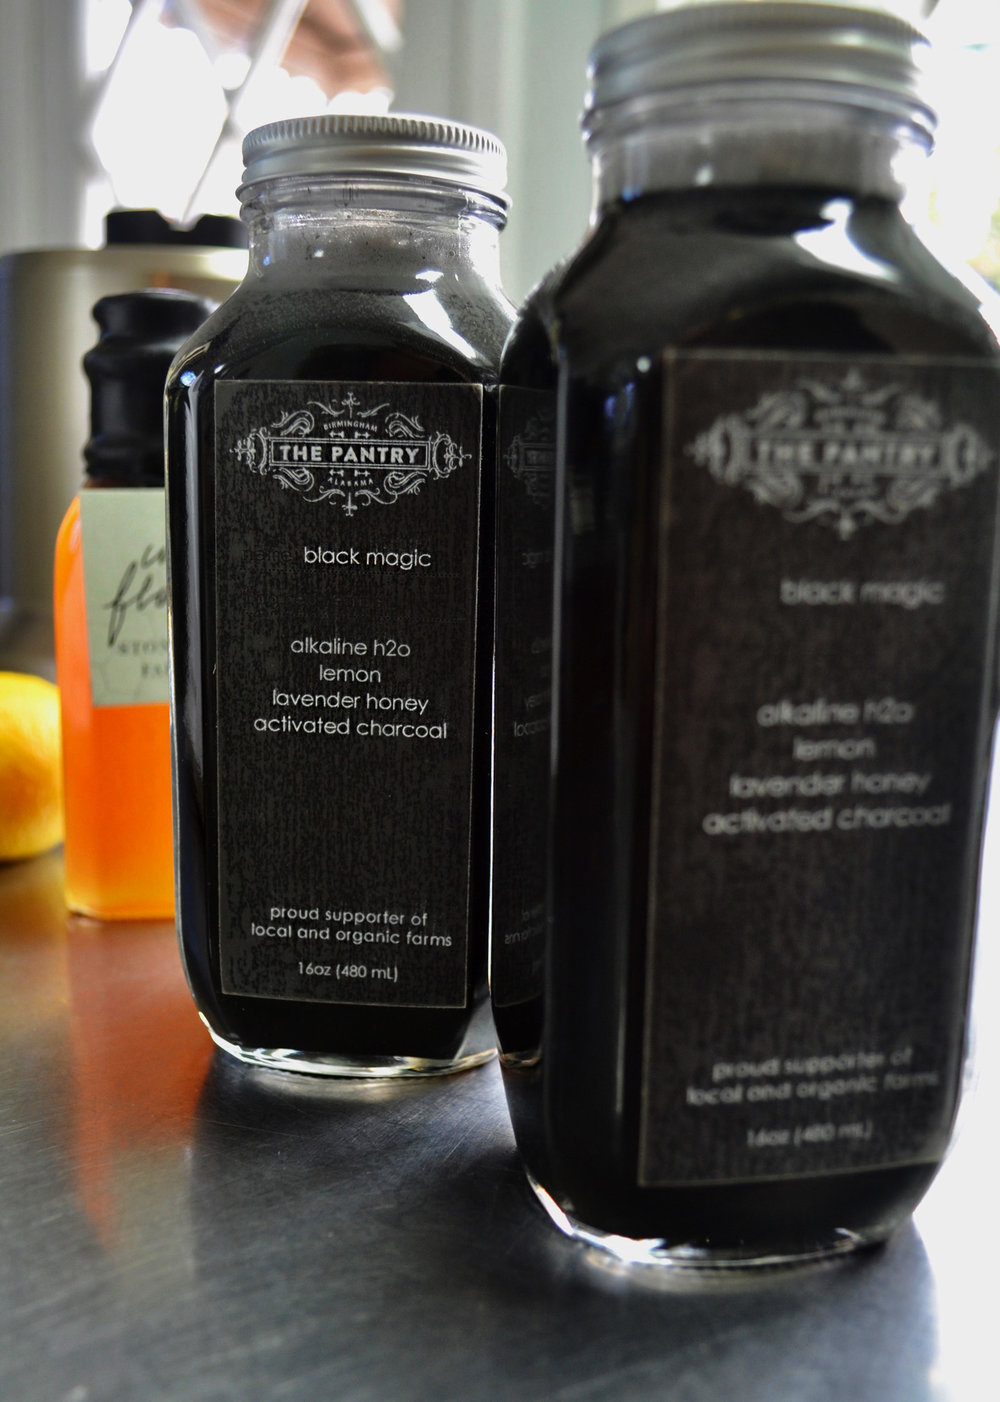 Black Magic, Activated Charcoal Juice at The Pantry